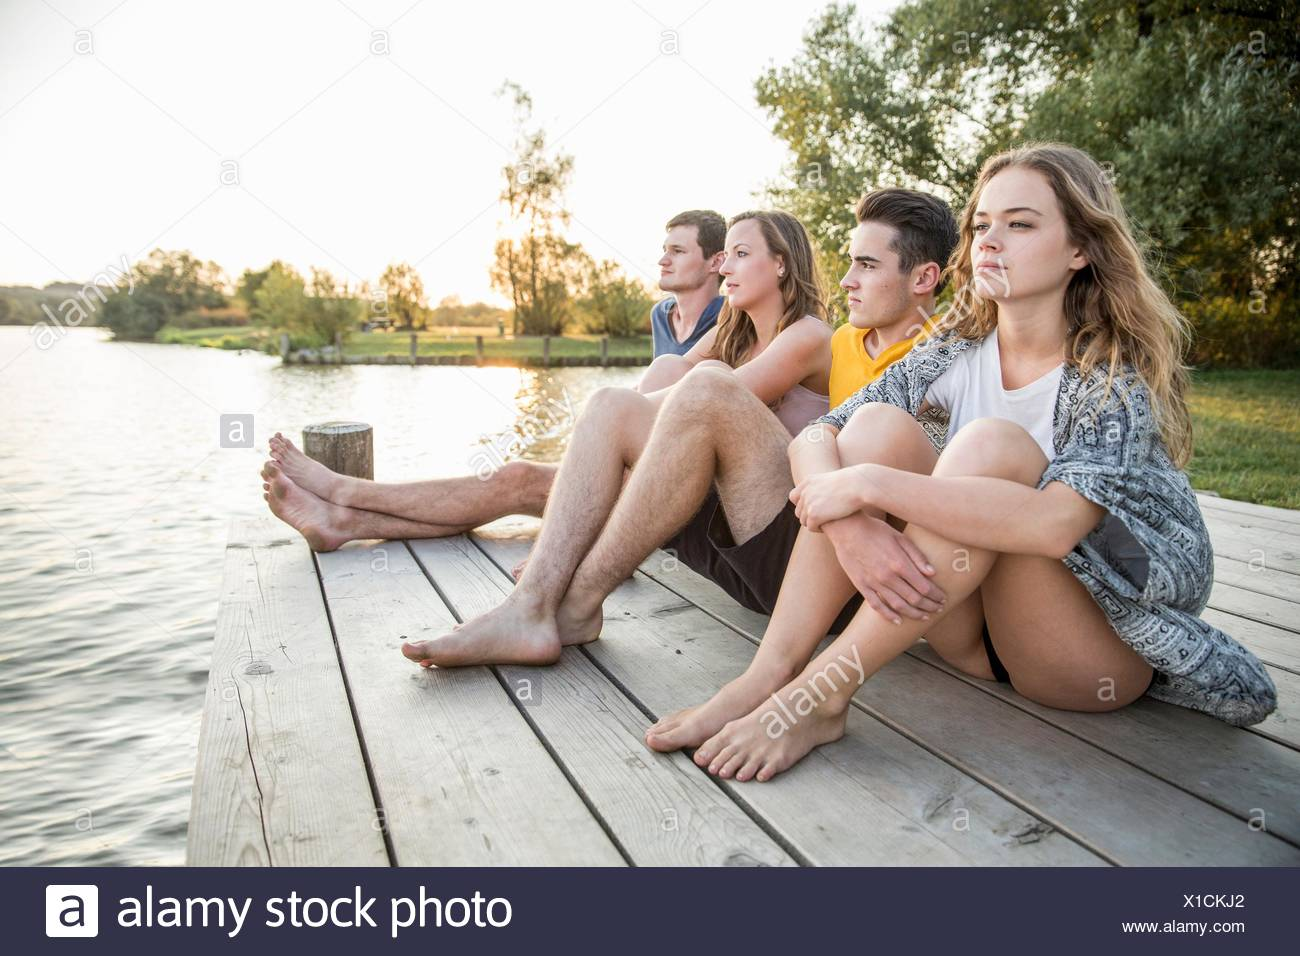 Groupe d'amis sitting on Jetty, relaxant Photo Stock